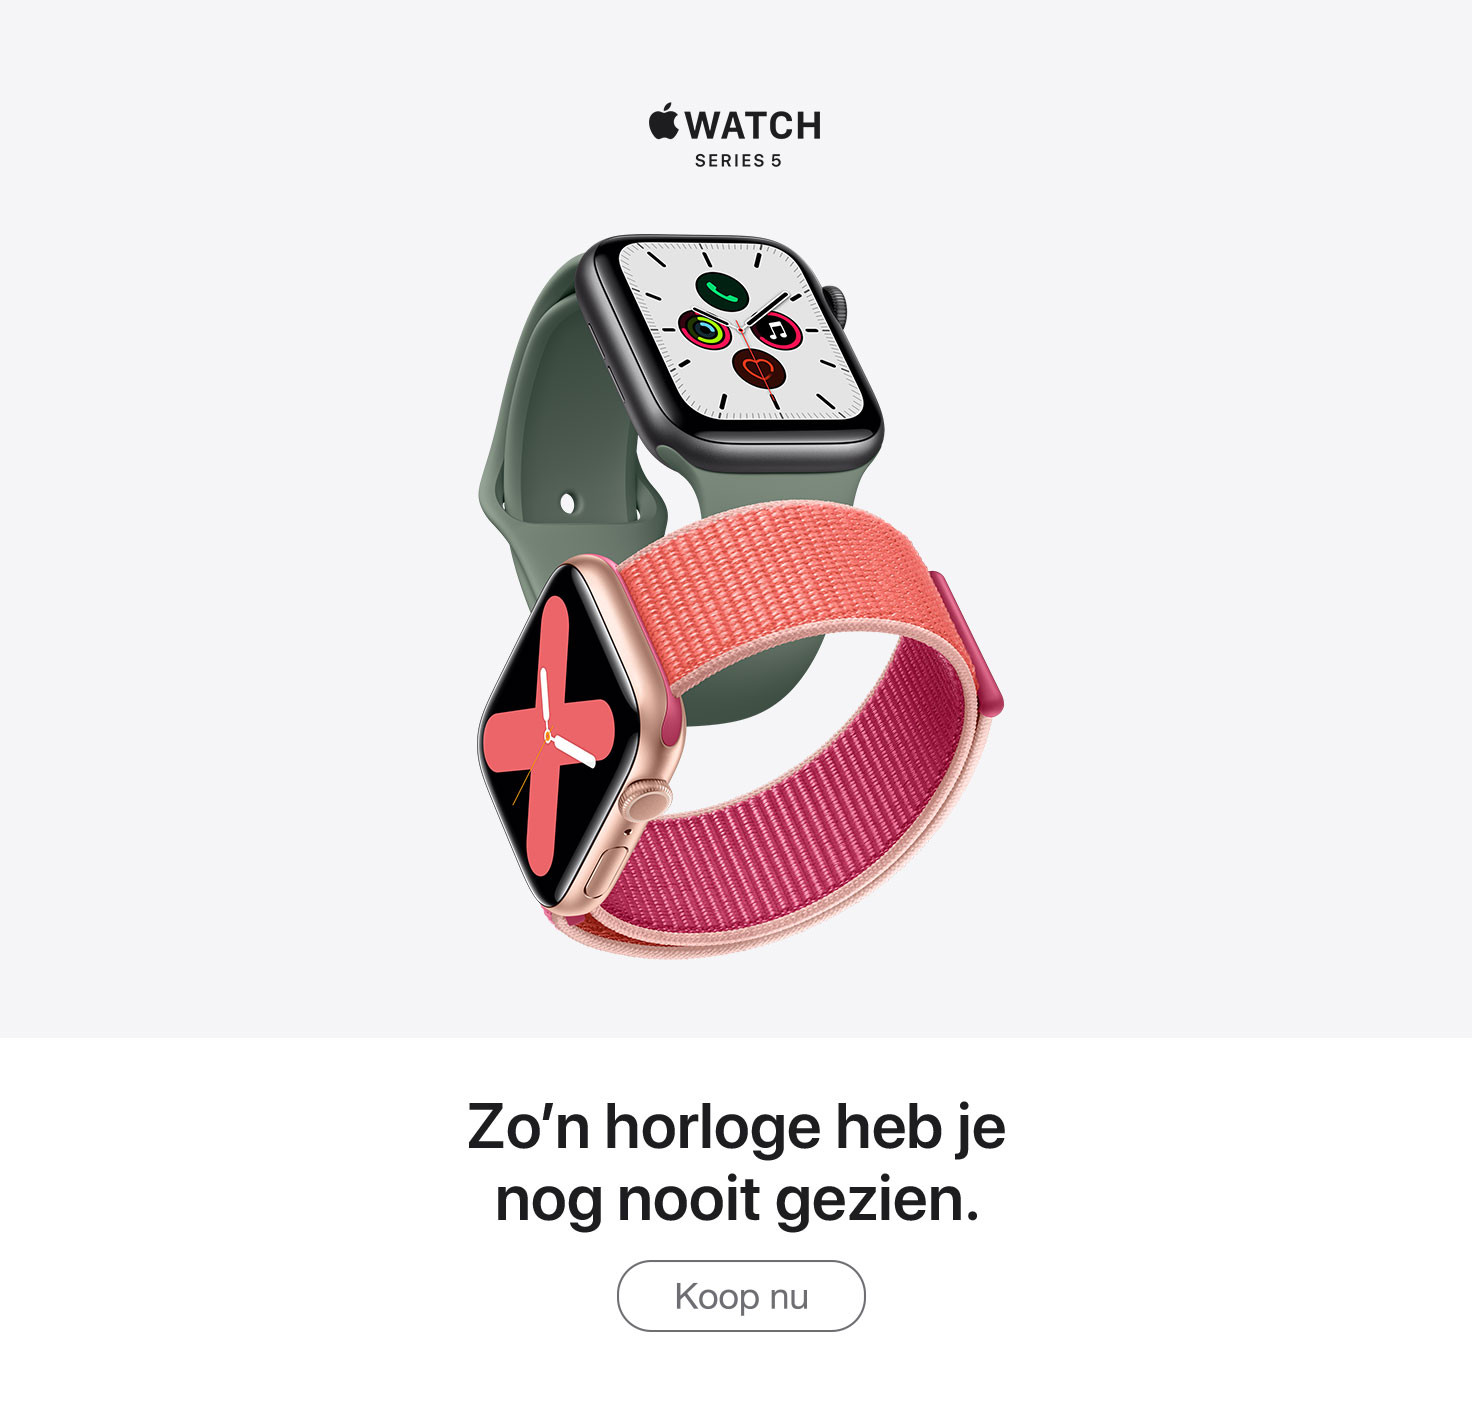 AppleWatchSeries5-productpage-mobile_01.jpg